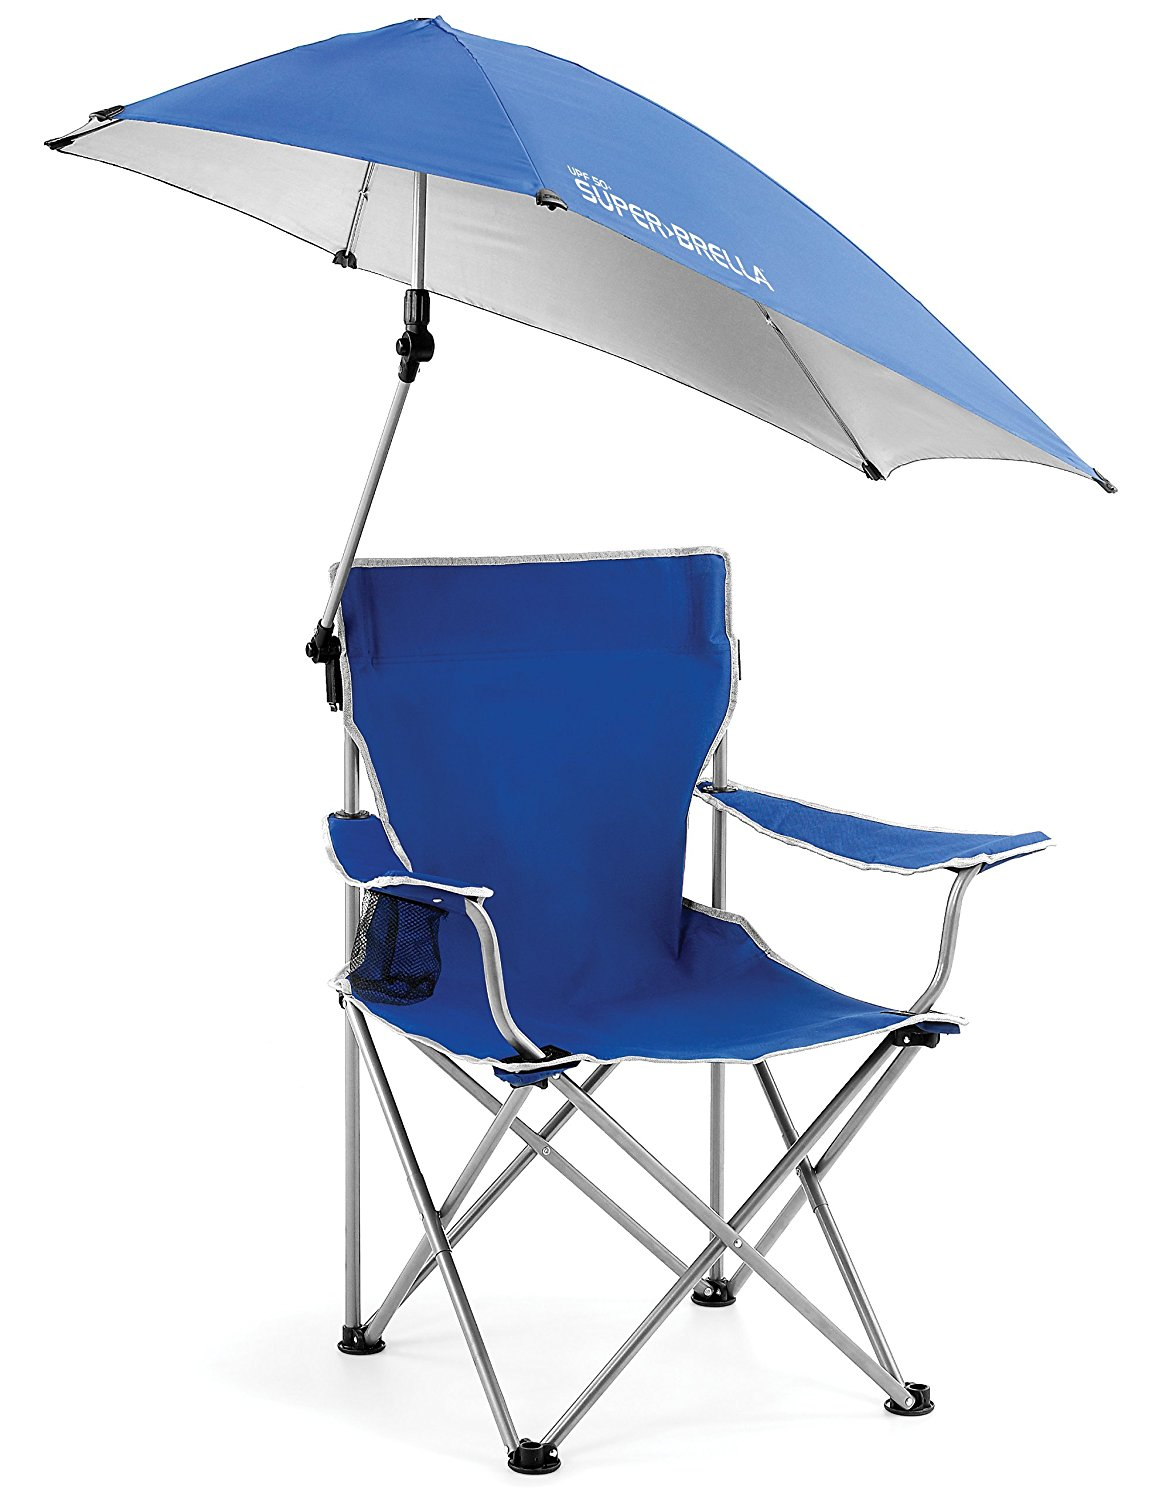 Camping Chair With Canopy Outdoor Quik Shade Adjustable Canopy Folding Camp Chair Portable Fishing Camping Reclining Lounging Chair Heavy Duty 100kg